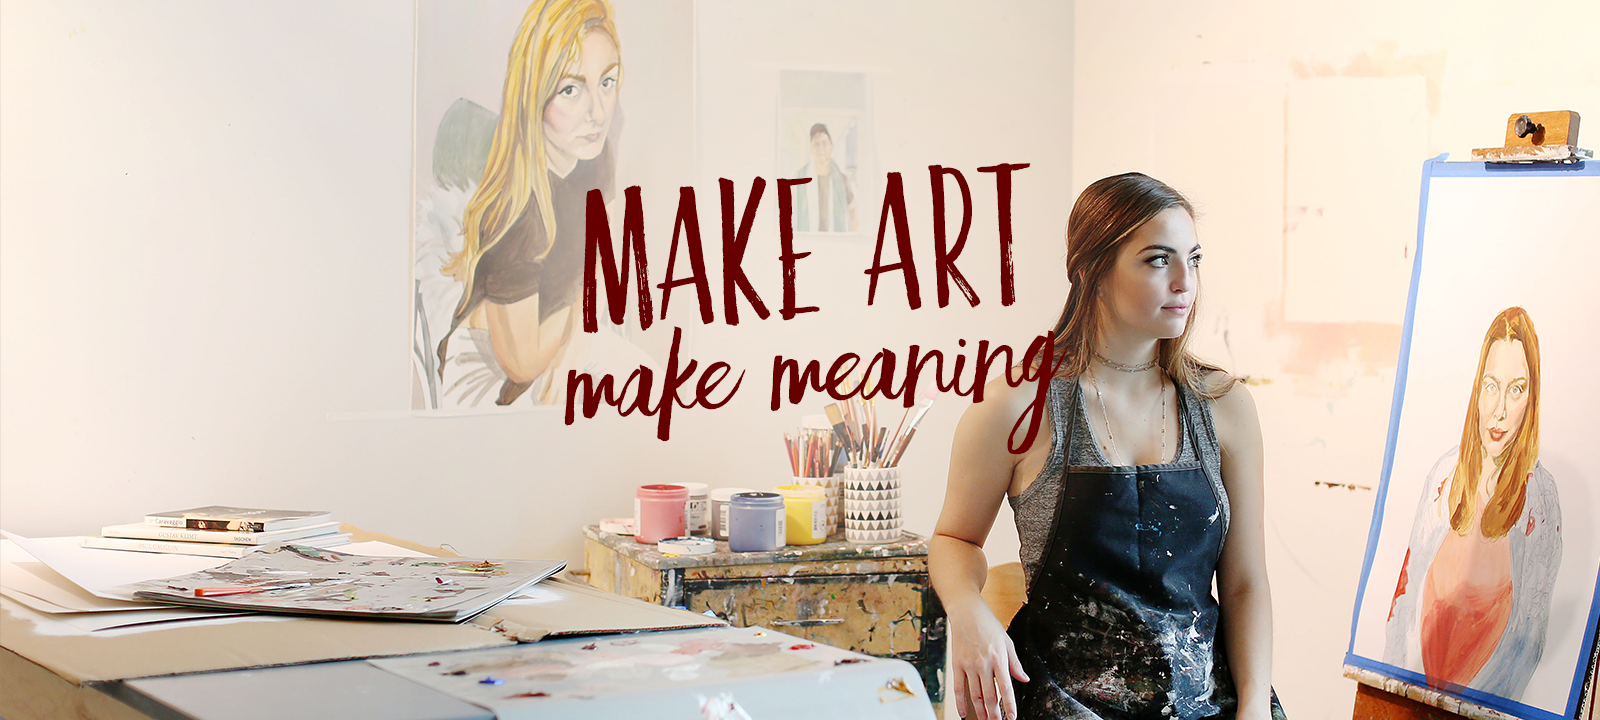 Whatever area of art truly inspires you, you'll find the flexibility you want to study it here